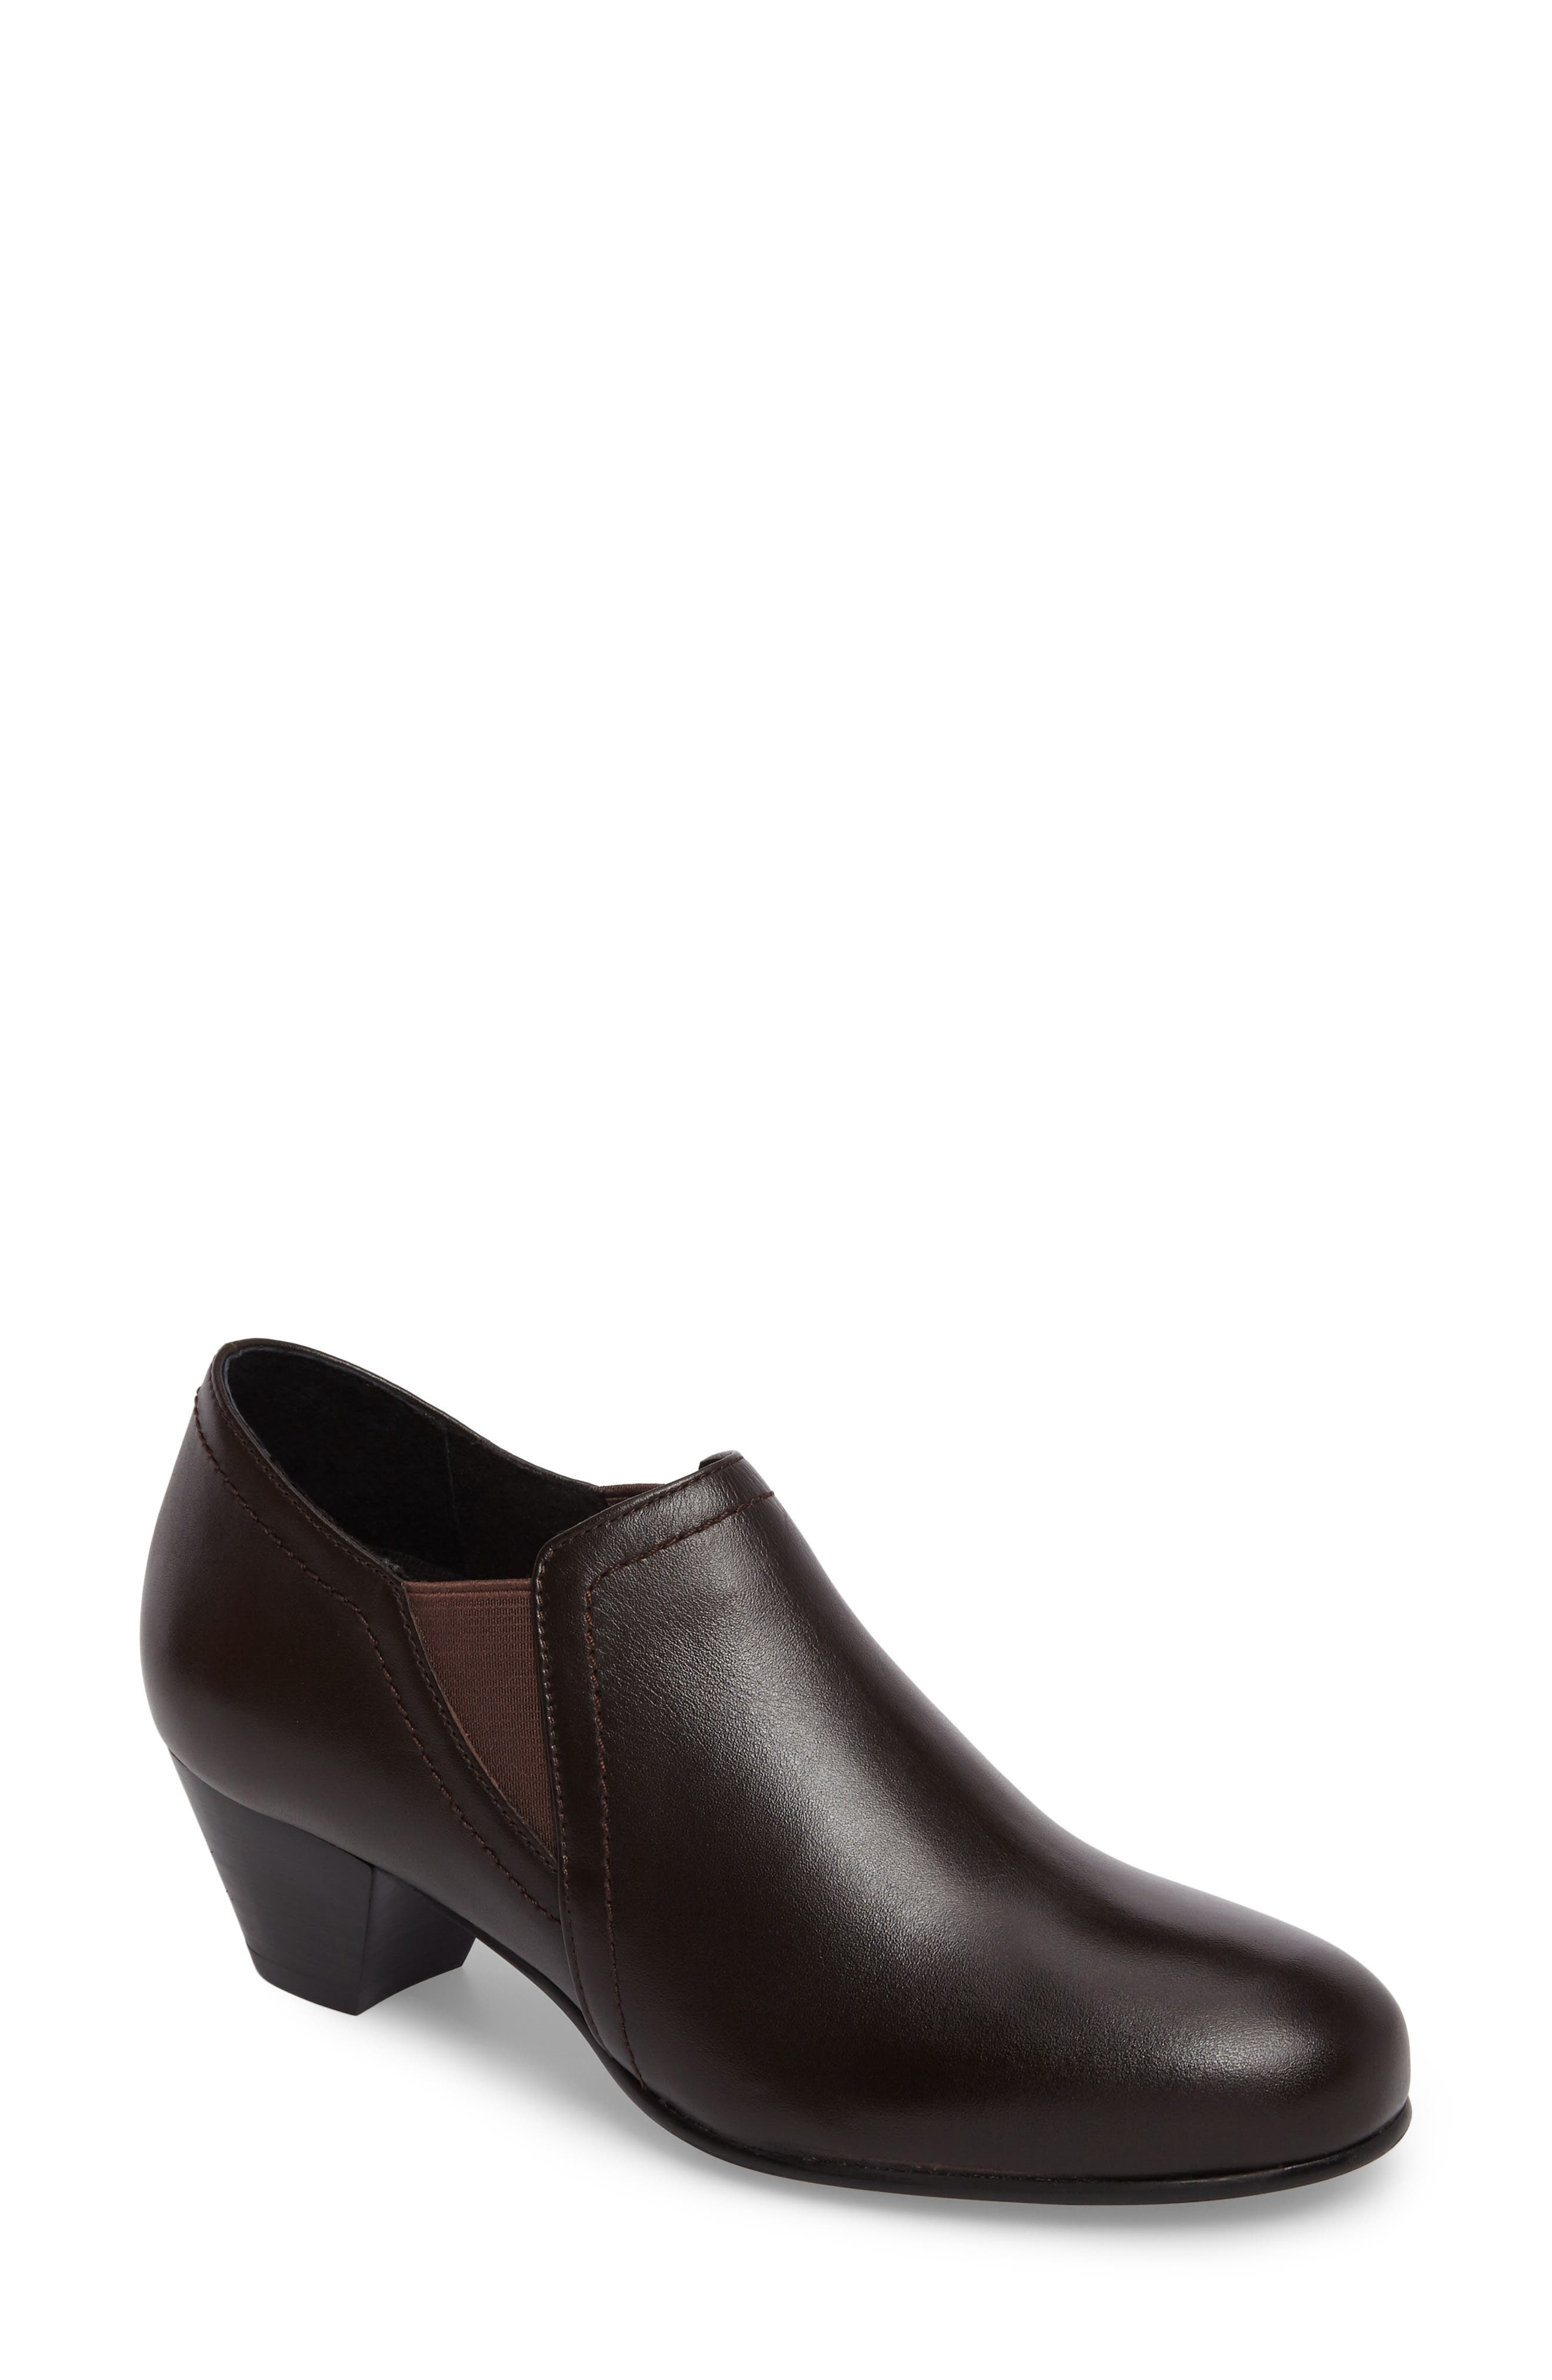 David Tate Maple Bootie- Brown